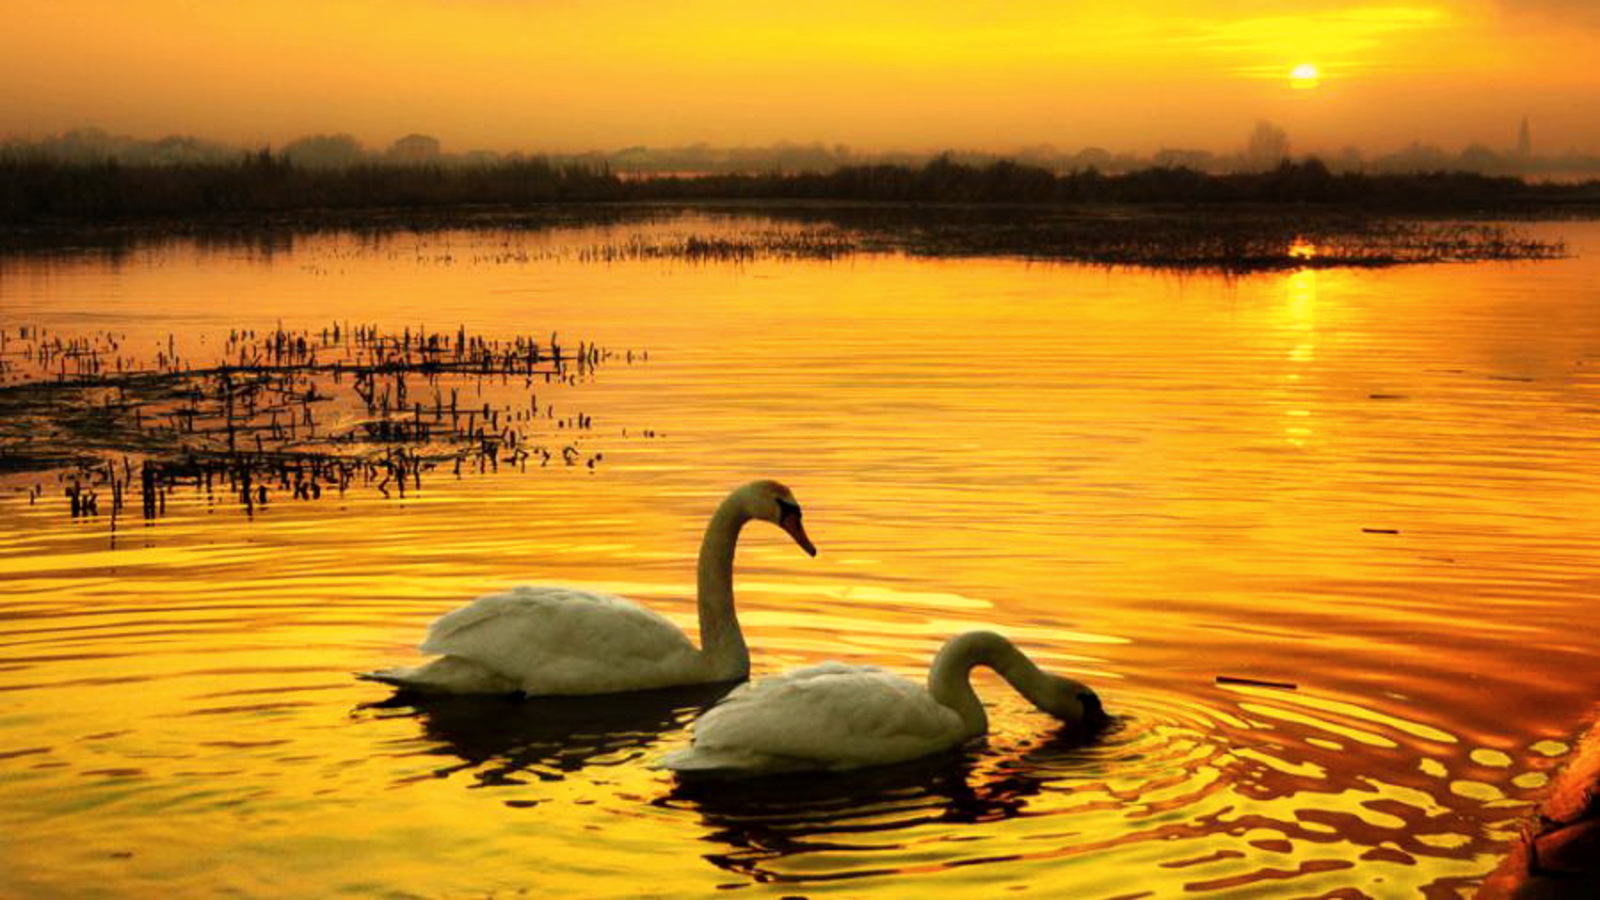 Swan lake wallpaper and background image 1600x900 id - Swan wallpapers for desktop ...